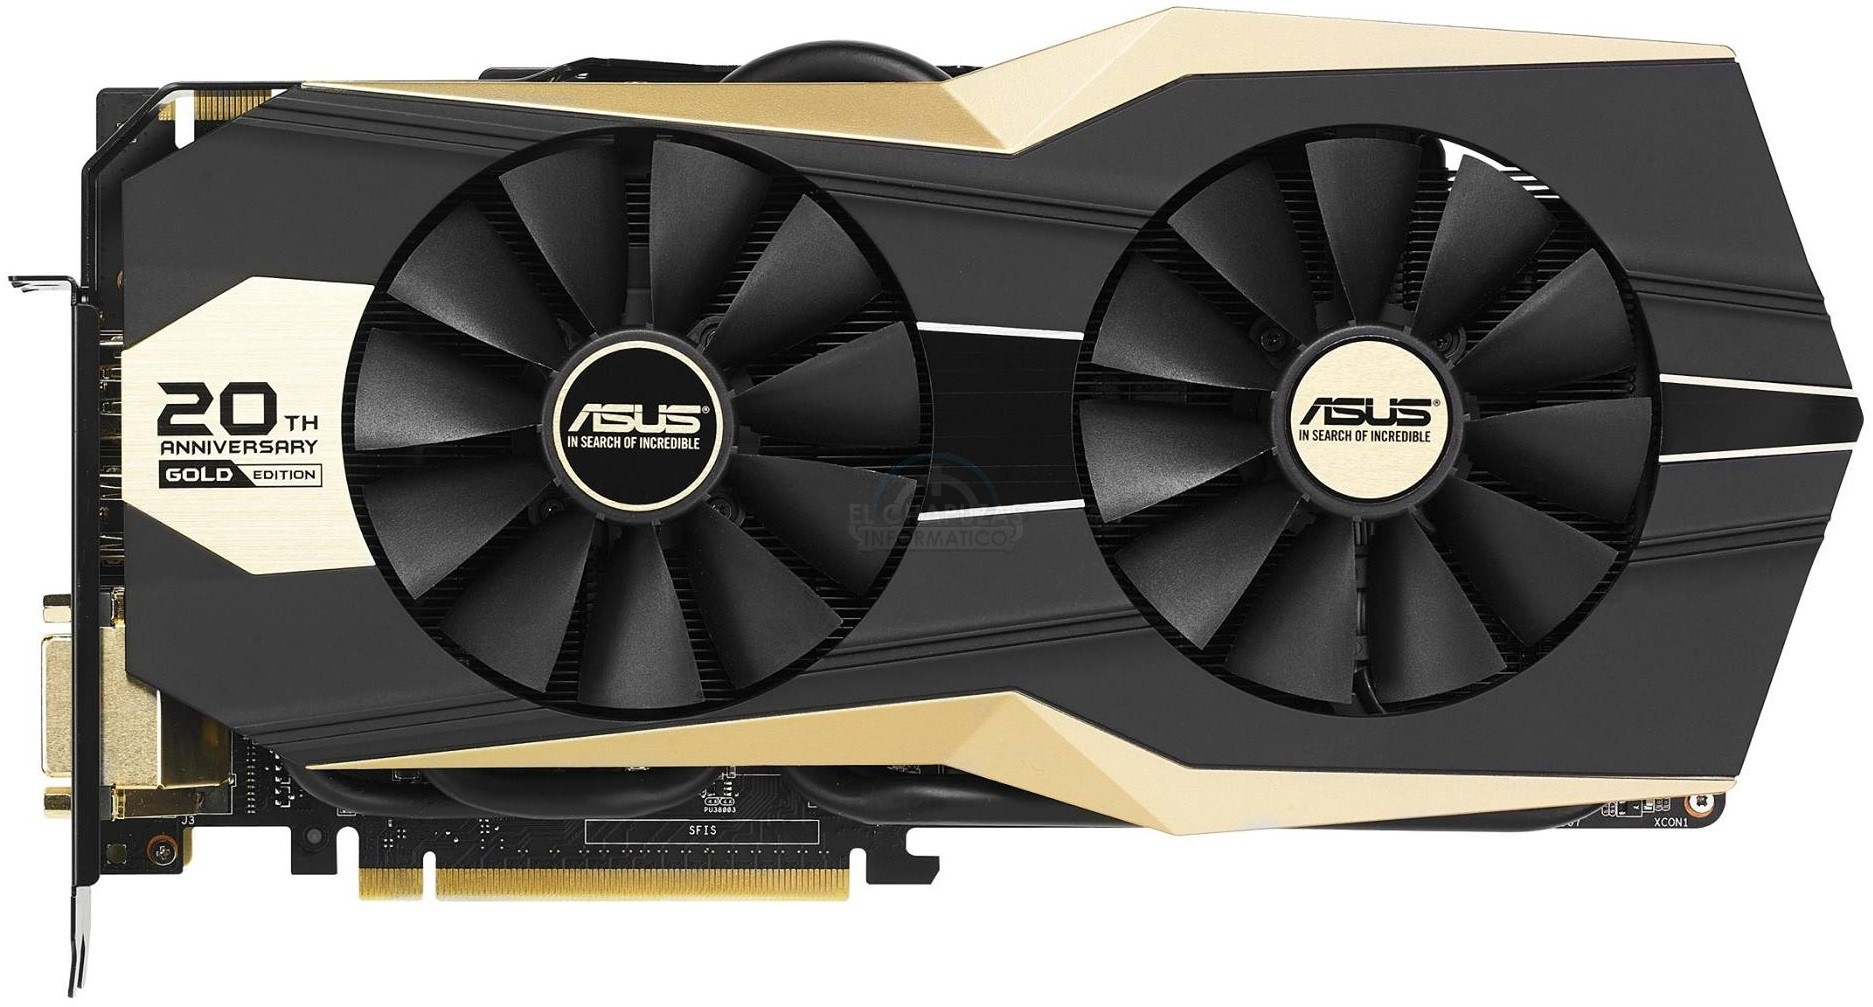 Terrible!: Asus GTX 980 20th Anniversary Gold Edition